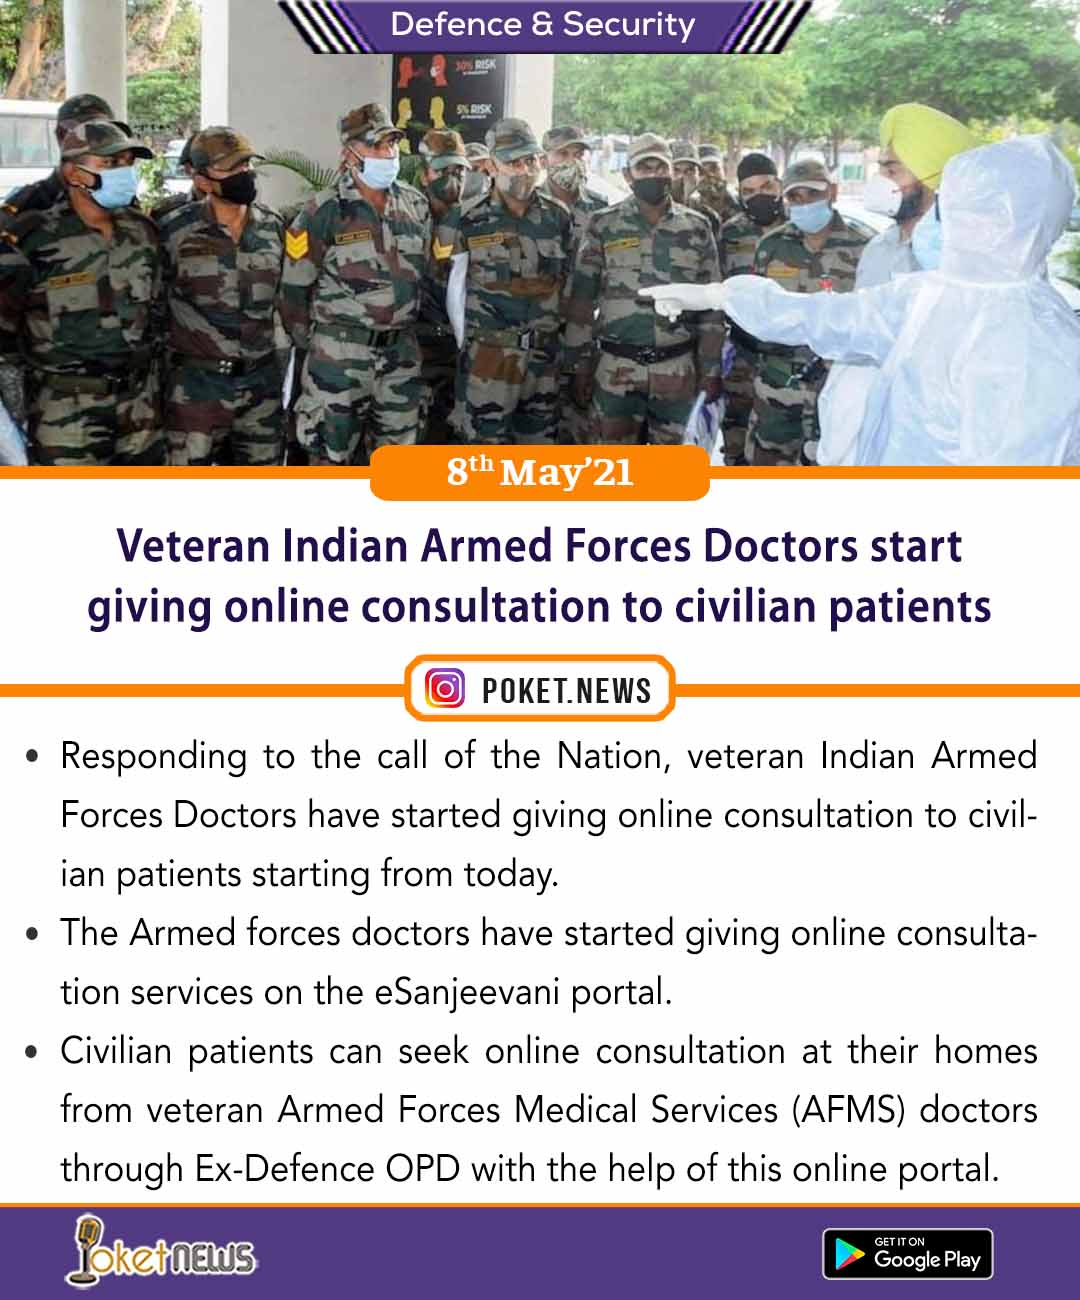 Veteran Indian Armed Forces Doctors start giving online consultation to civilian patients